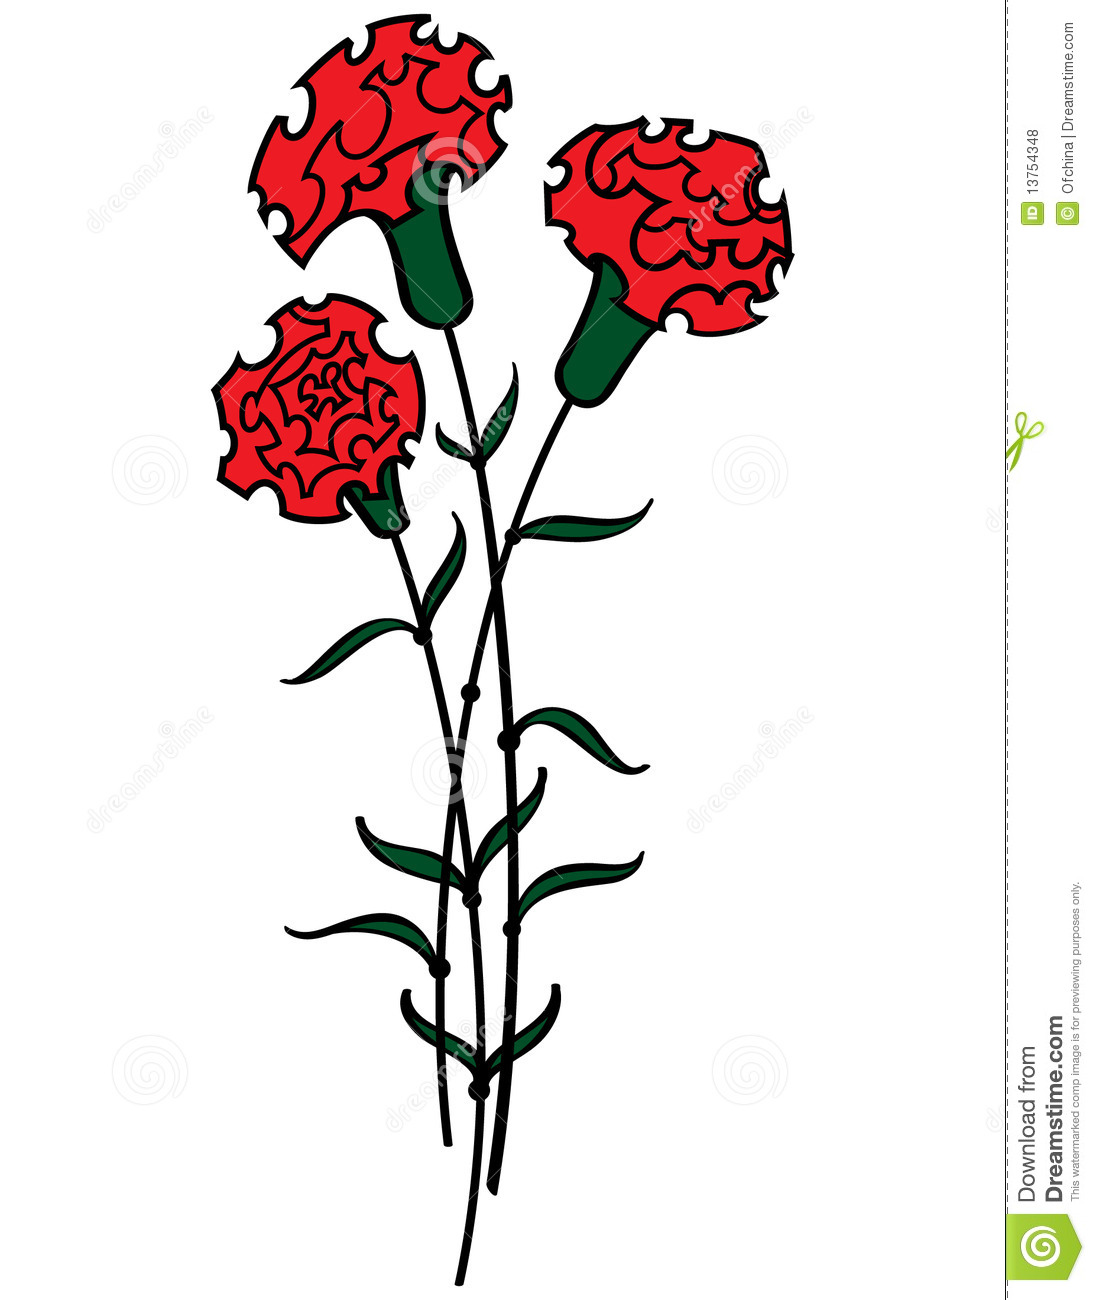 Red Carnations Royalty Free Stock Photos - Image: 13754348